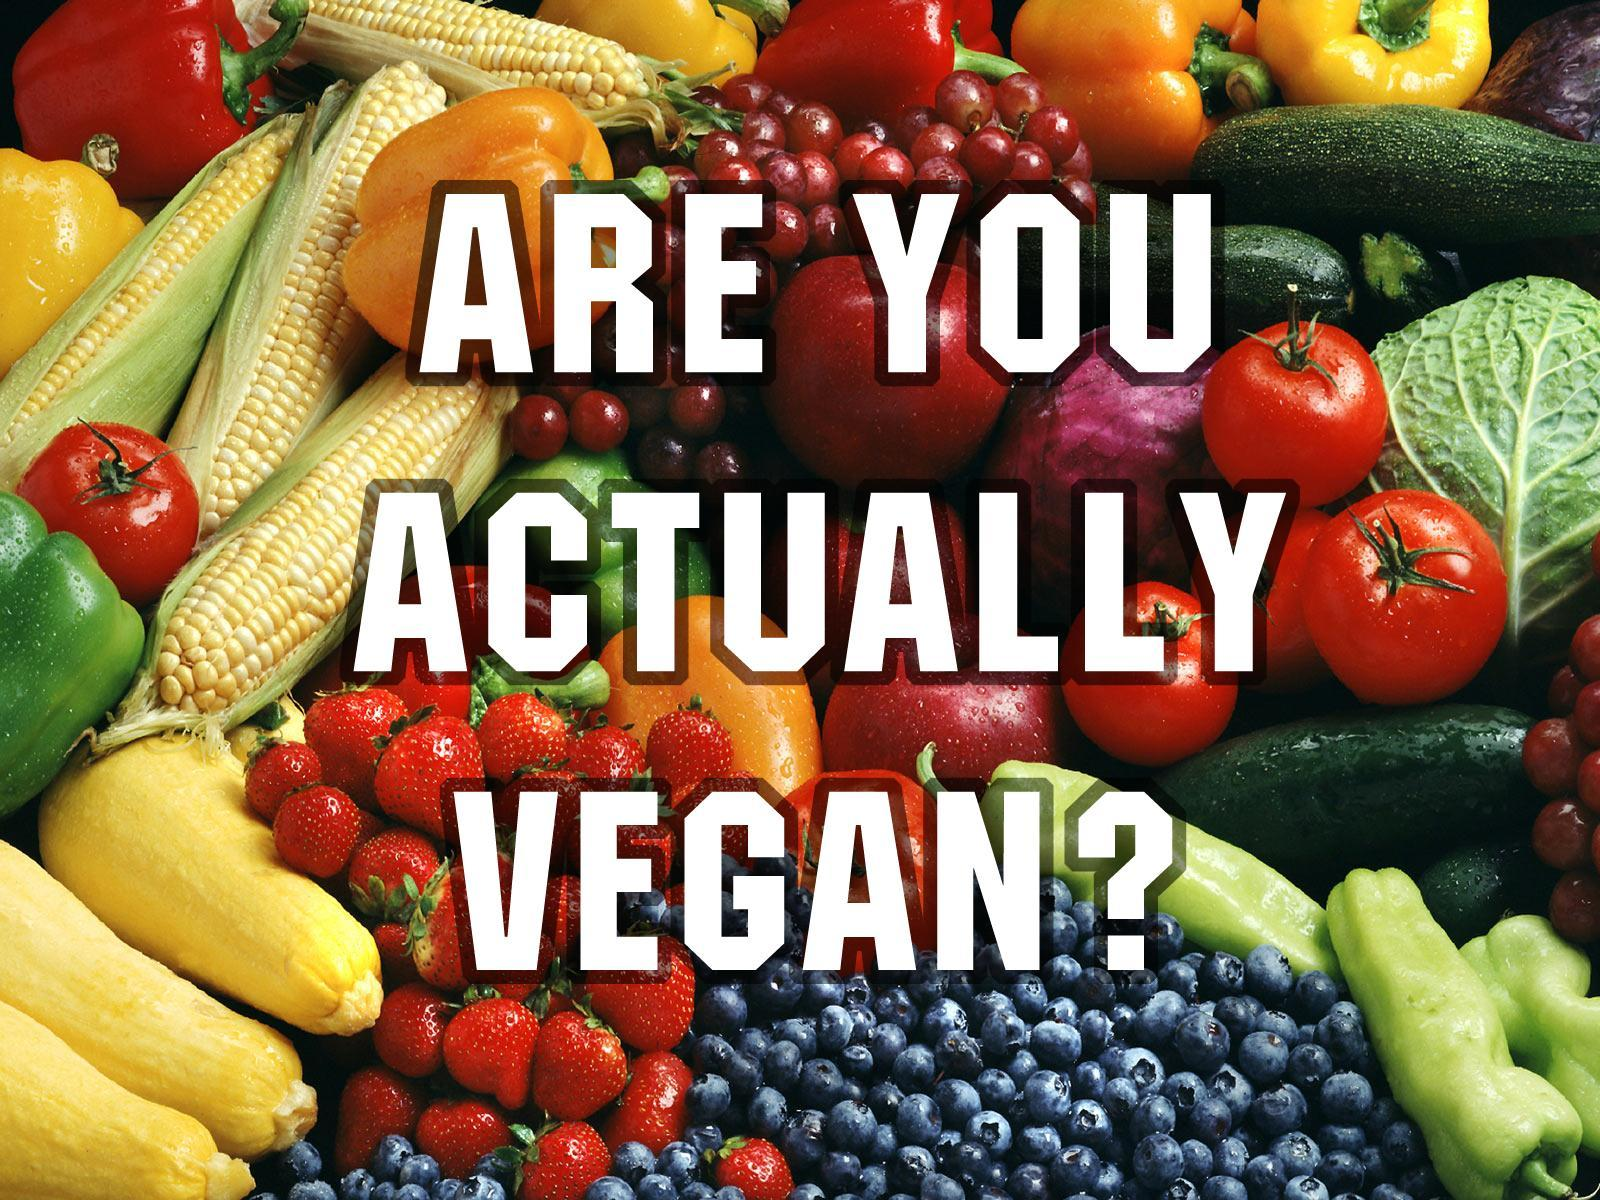 Are you actually vegan?